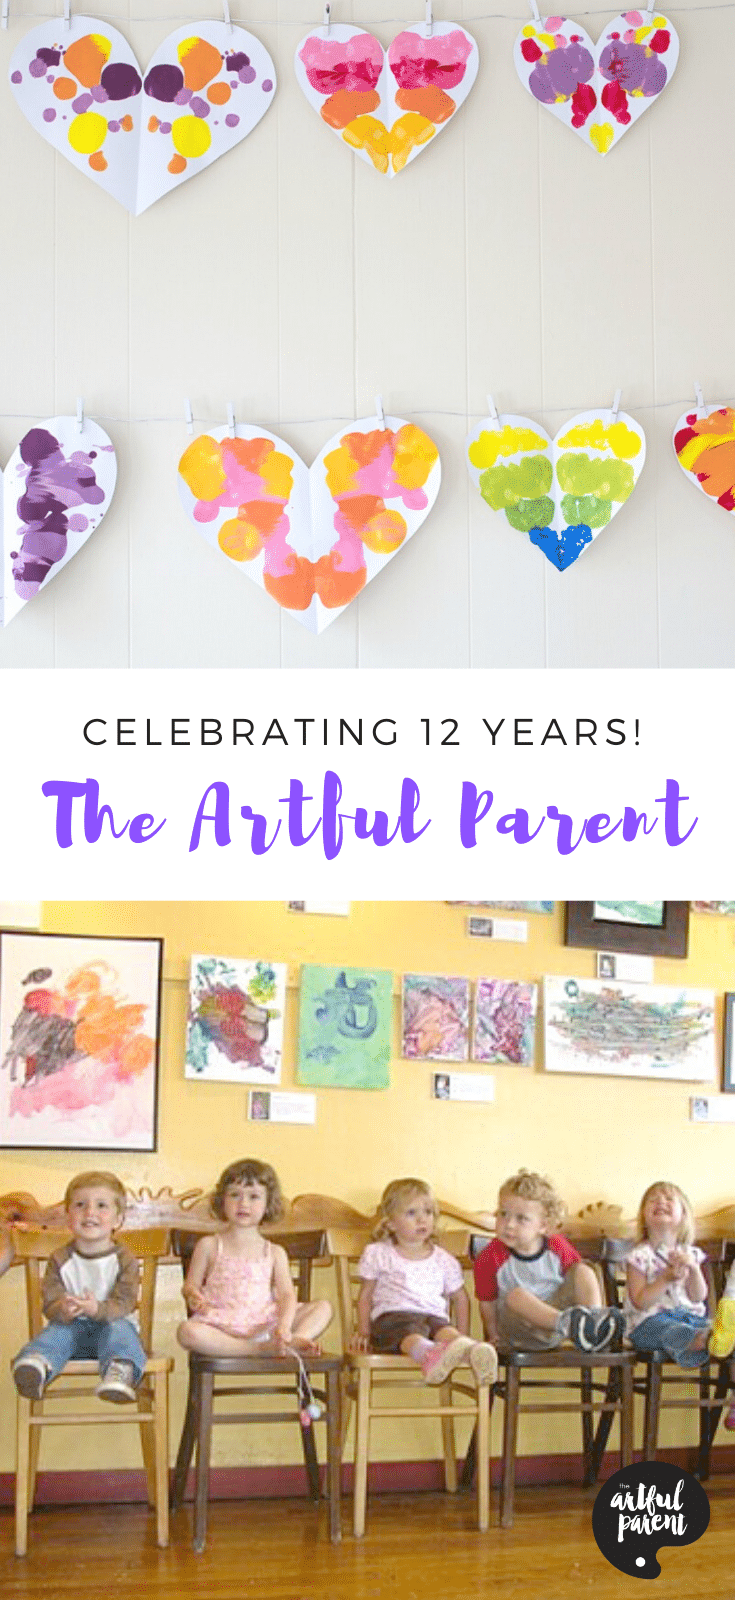 Celebrating 12 Years at The Artful Parent_ Pinterest